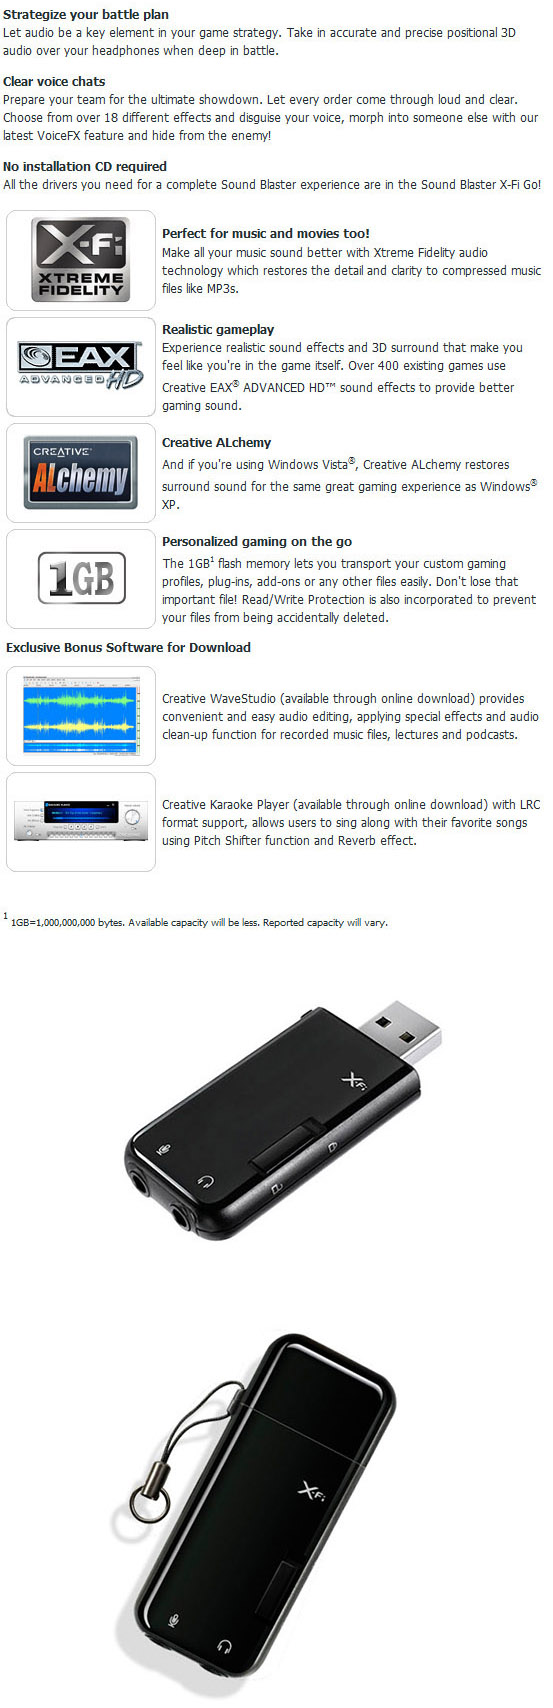 Creative Sound Blaster X-Fi Go! USB Sound Card [SB-GO] : PC Case Gear